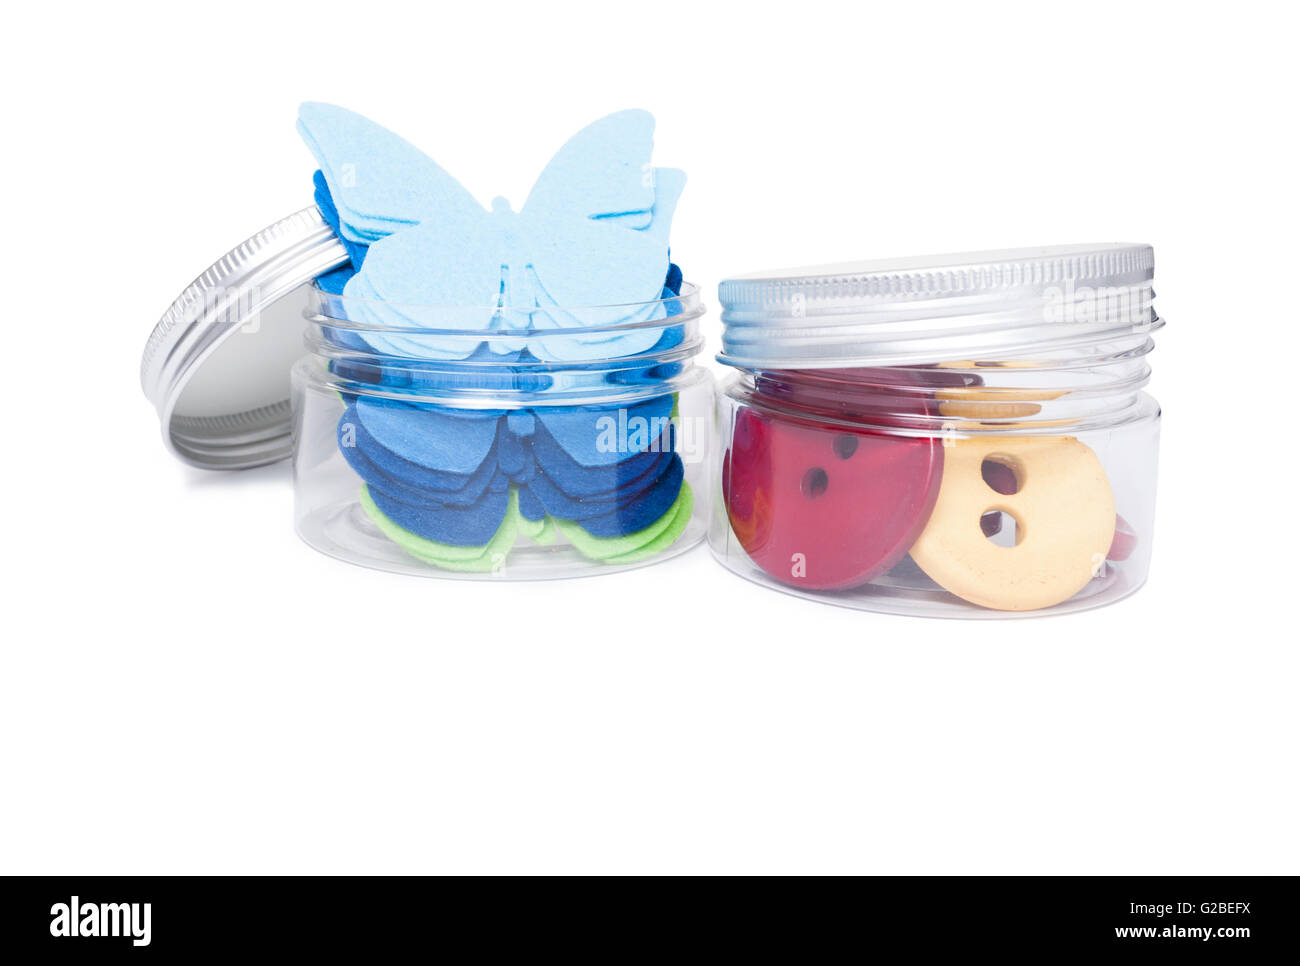 Buttons and butterfly textile shapes as creativity concept in transparent plastic jars isolated on white background - Stock Image